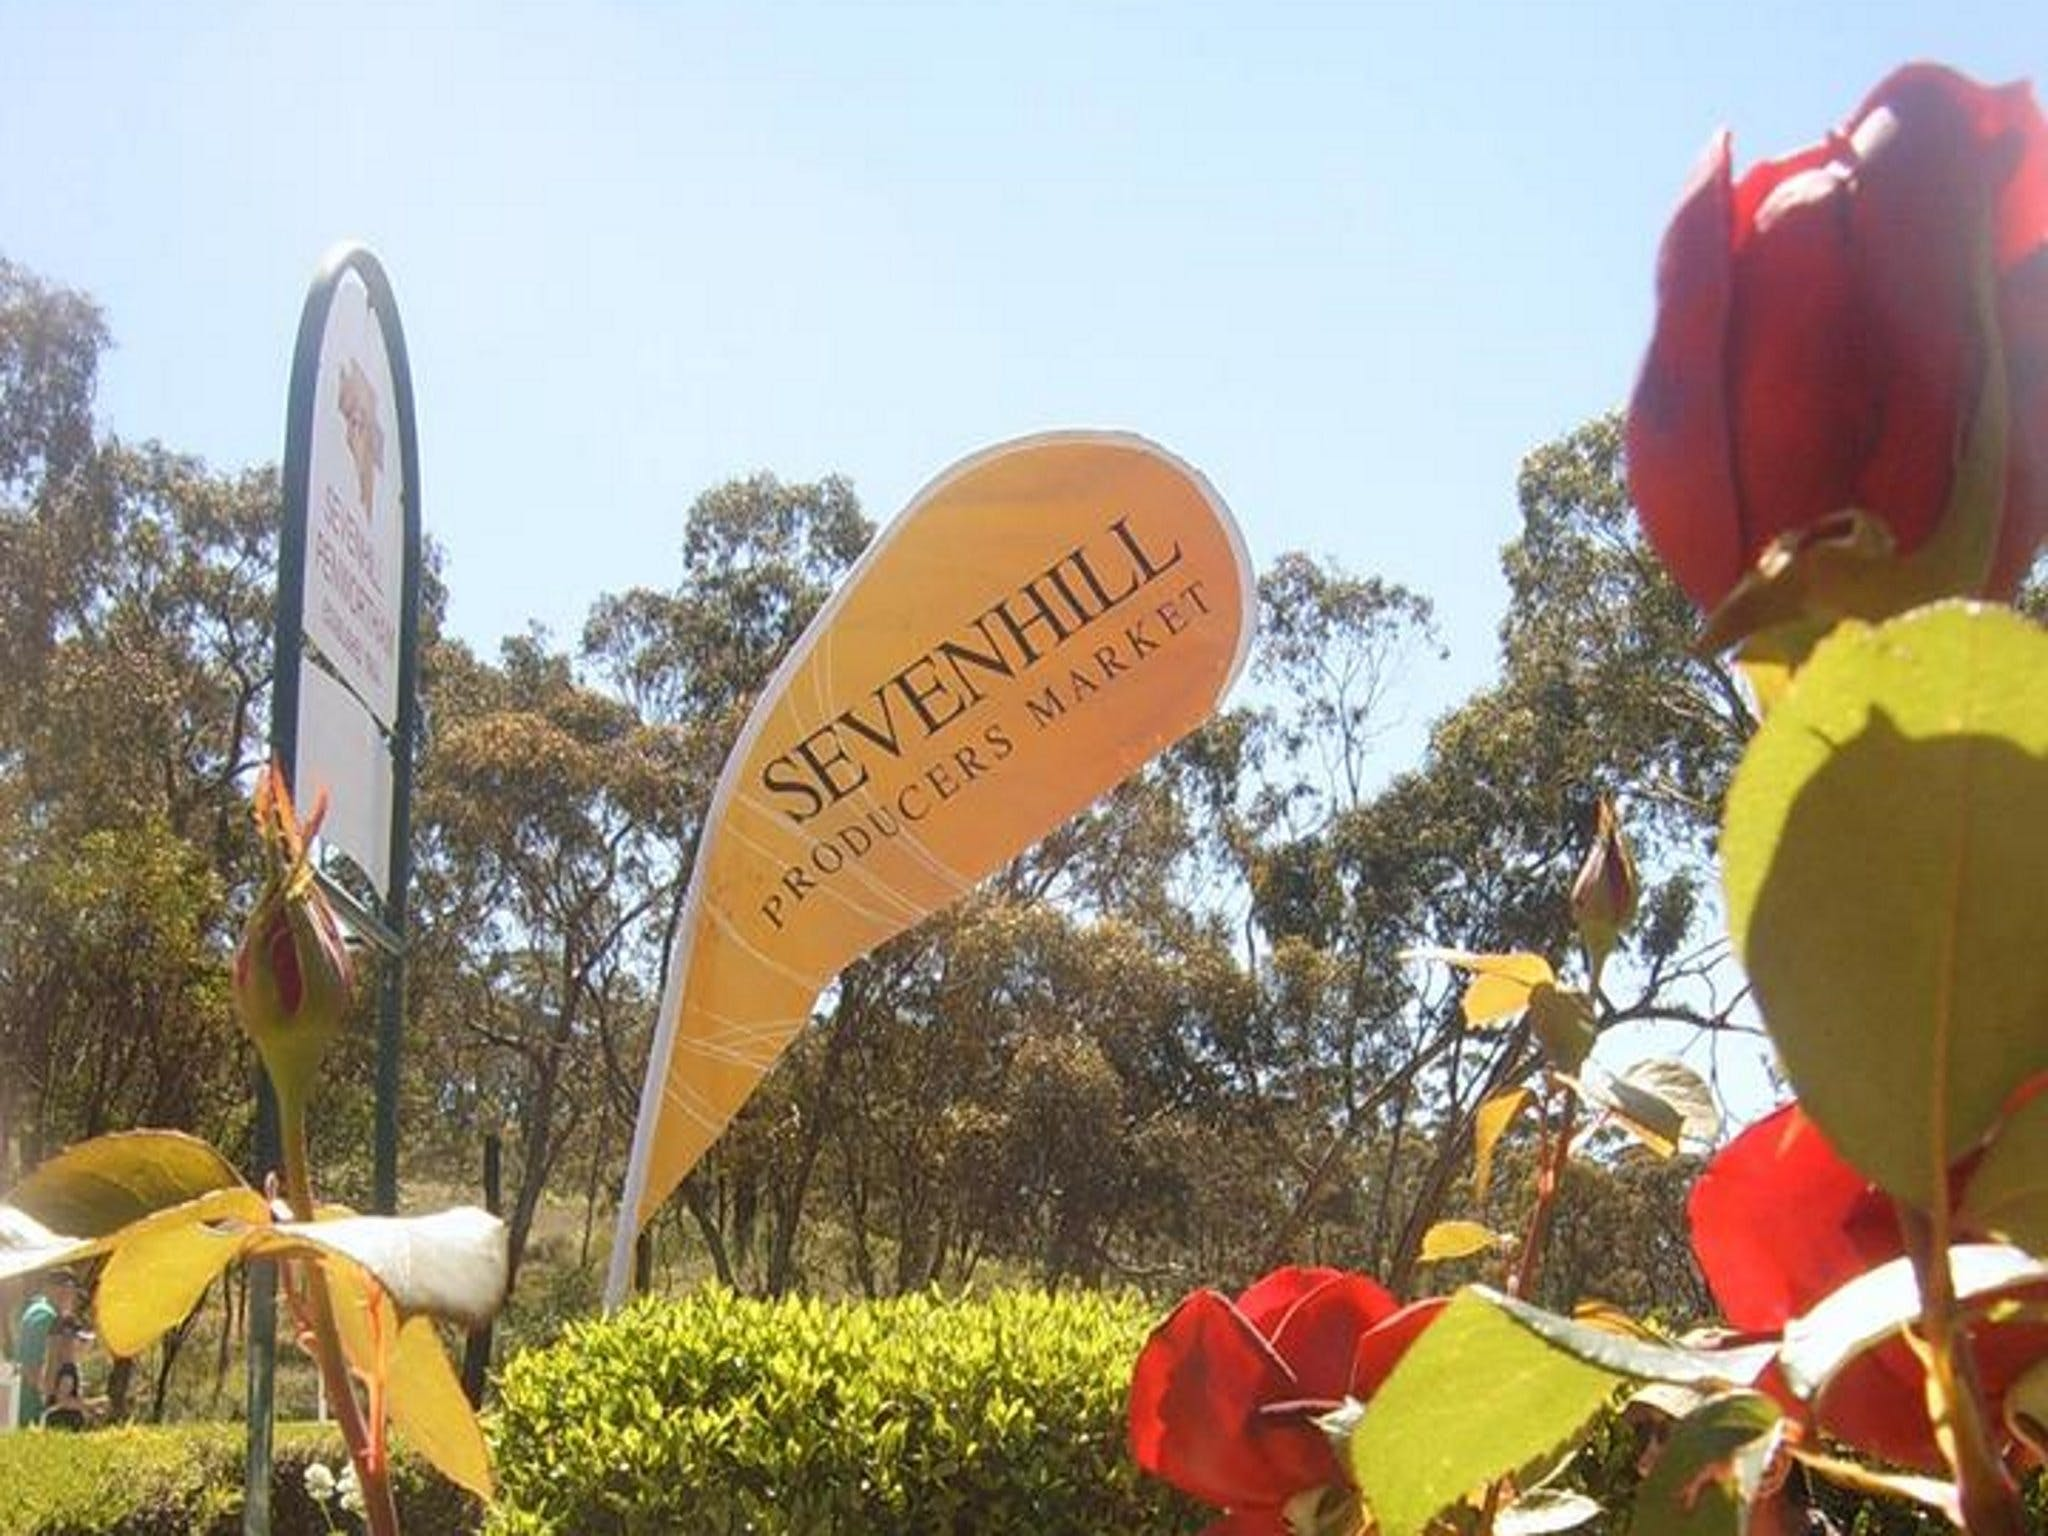 Sevenhill Producers Market - Accommodation Tasmania